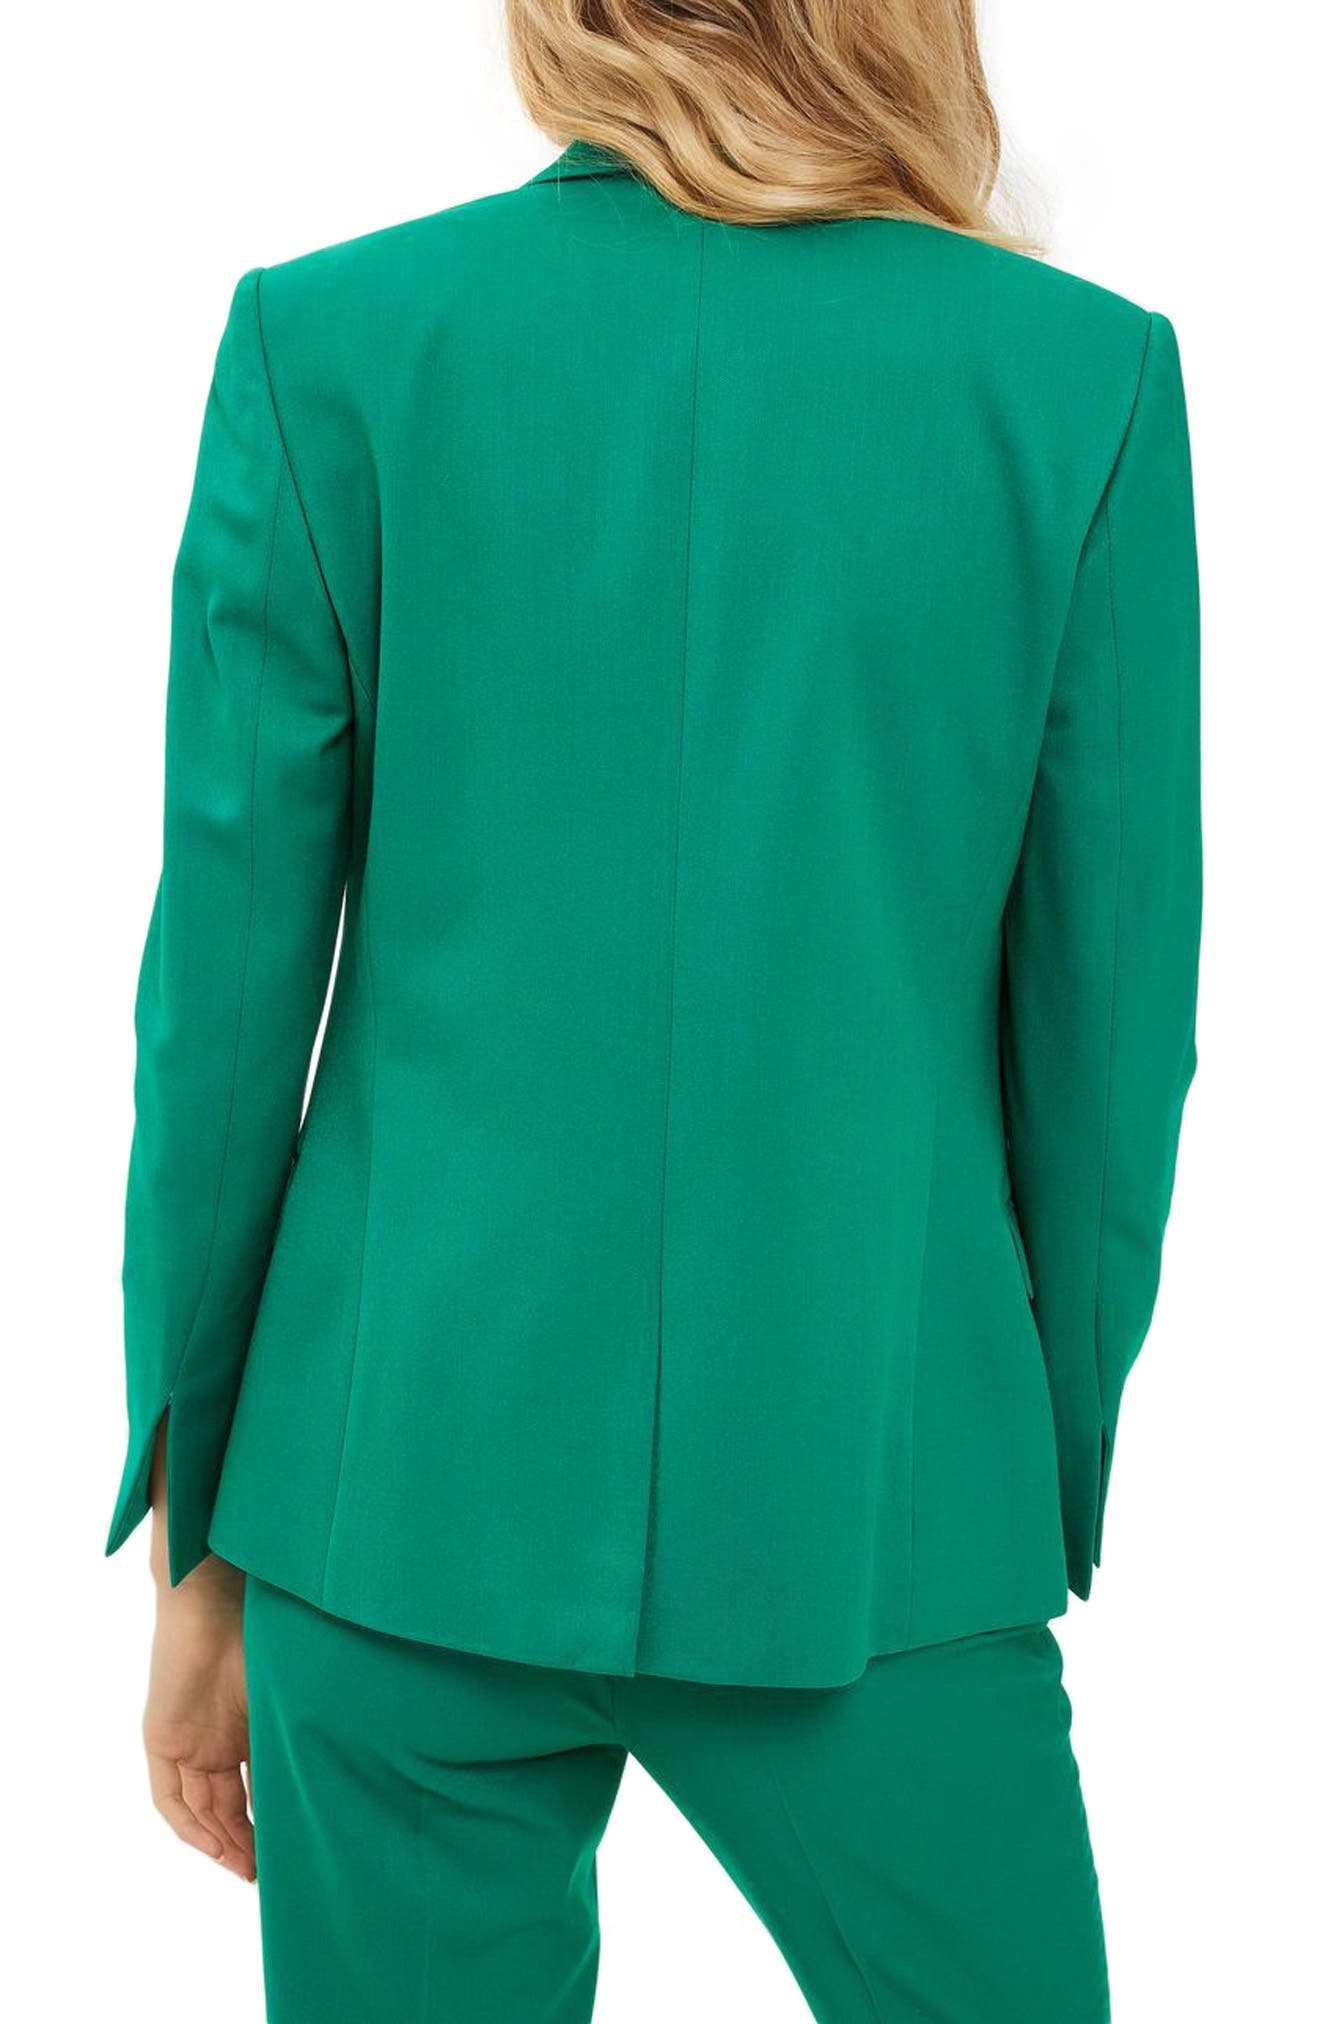 Double Breasted Suit Jacket,                             Alternate thumbnail 2, color,                             300